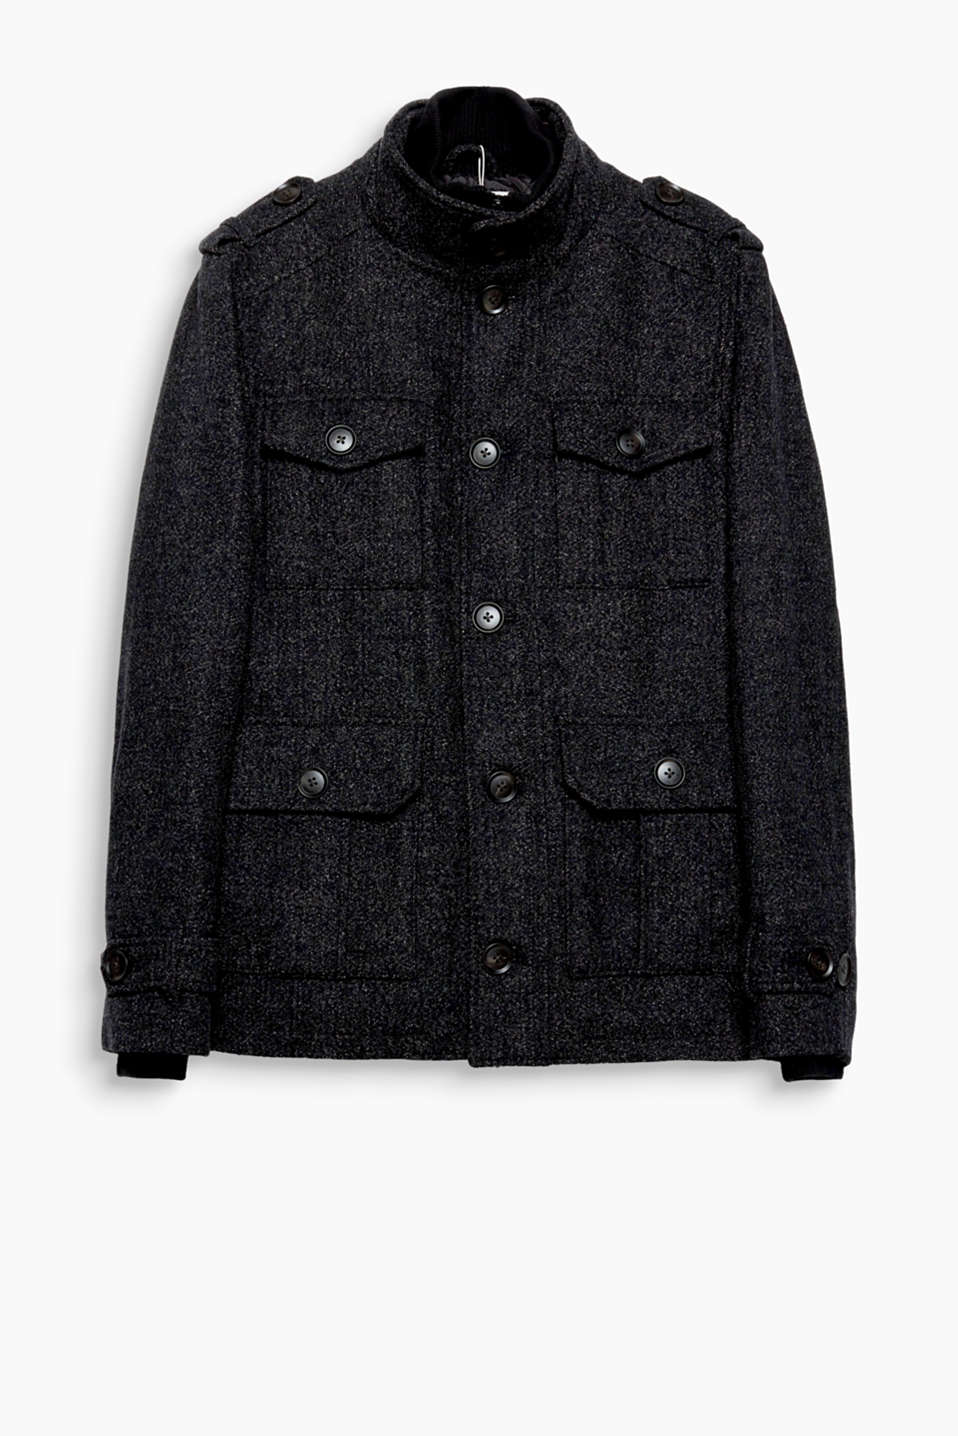 Elegant wool blend meets an urban street style: this melange field jacket boasts a high collar and many pockets